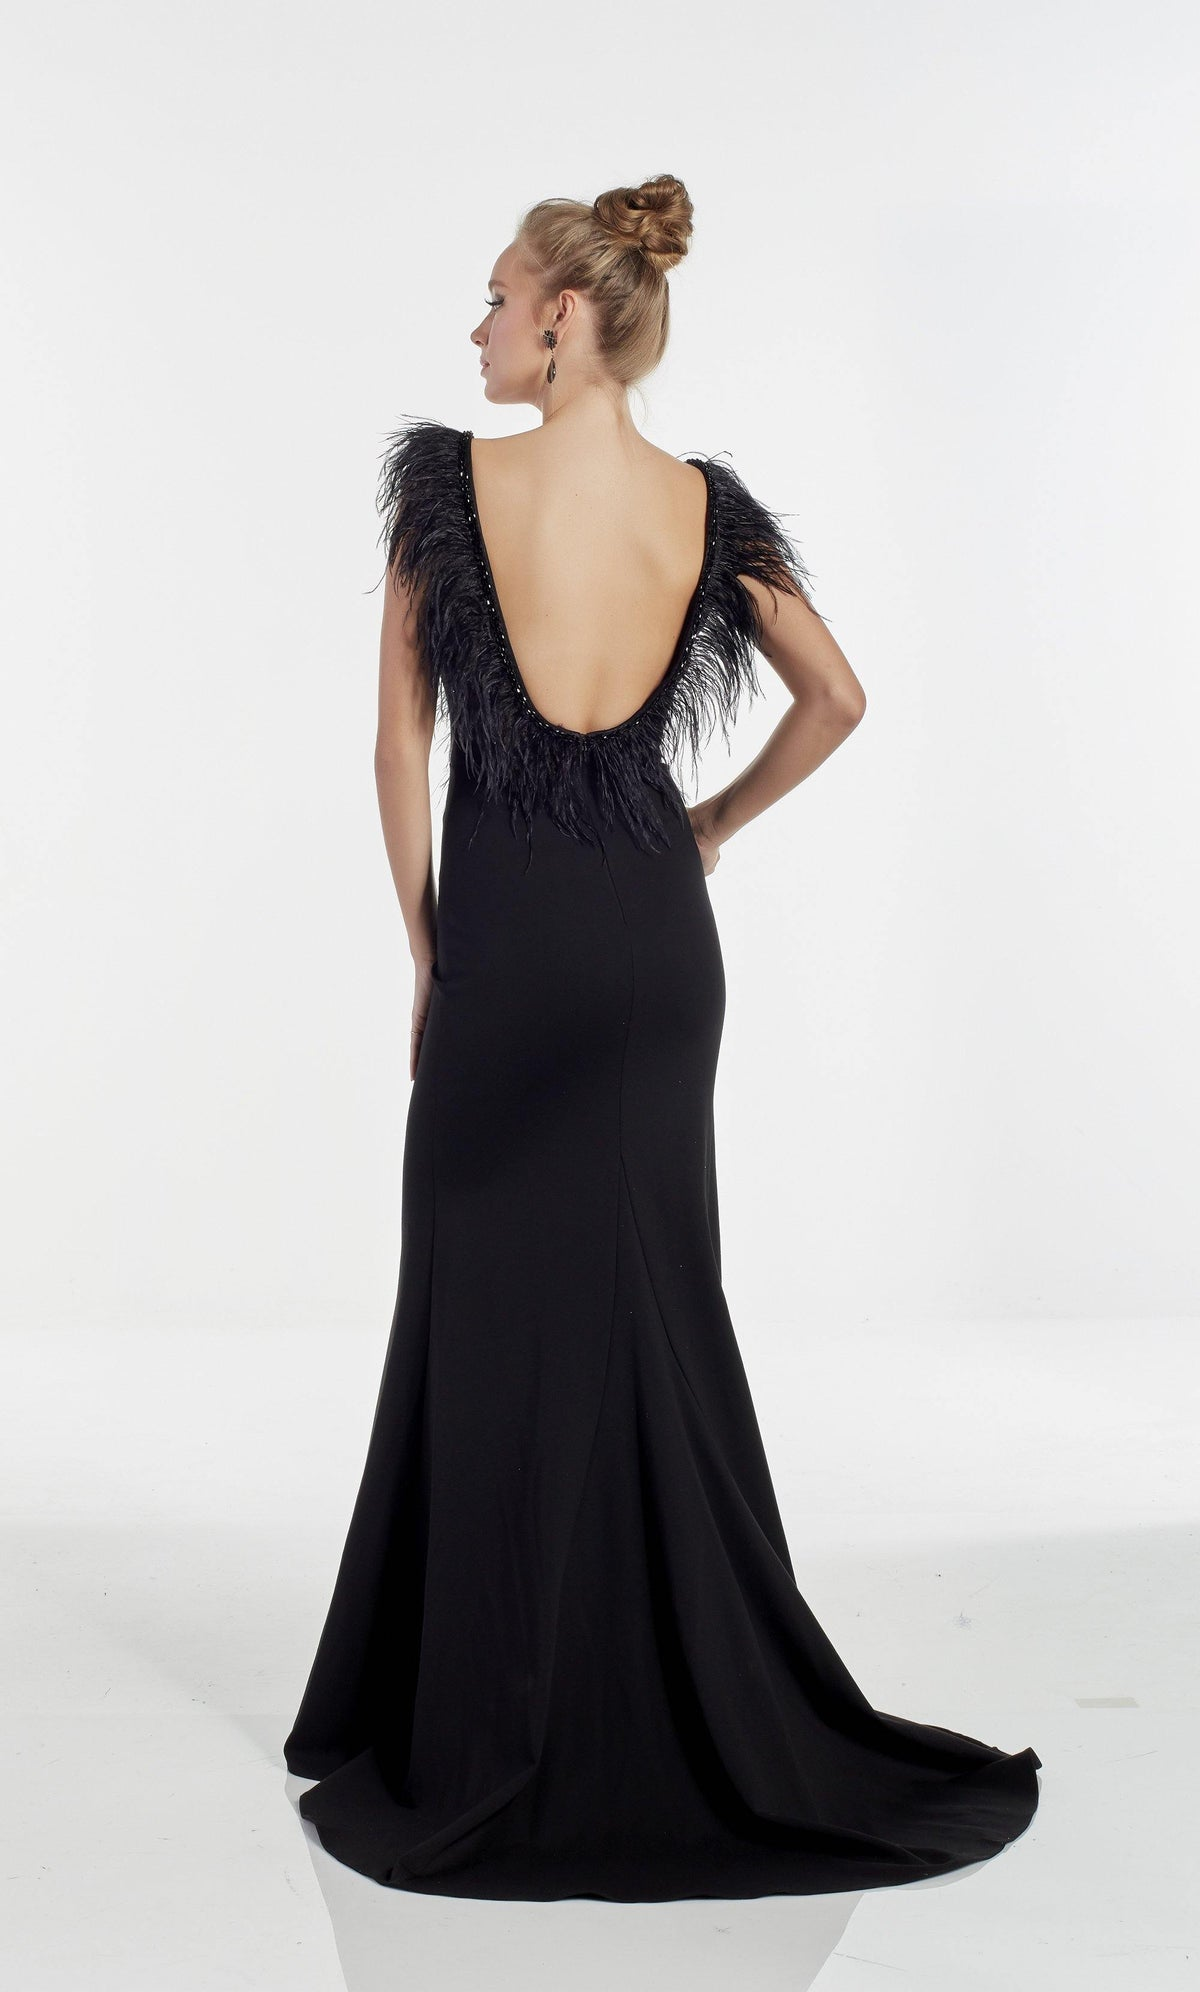 Black evening gown with an open back, feather accented bodice, and train